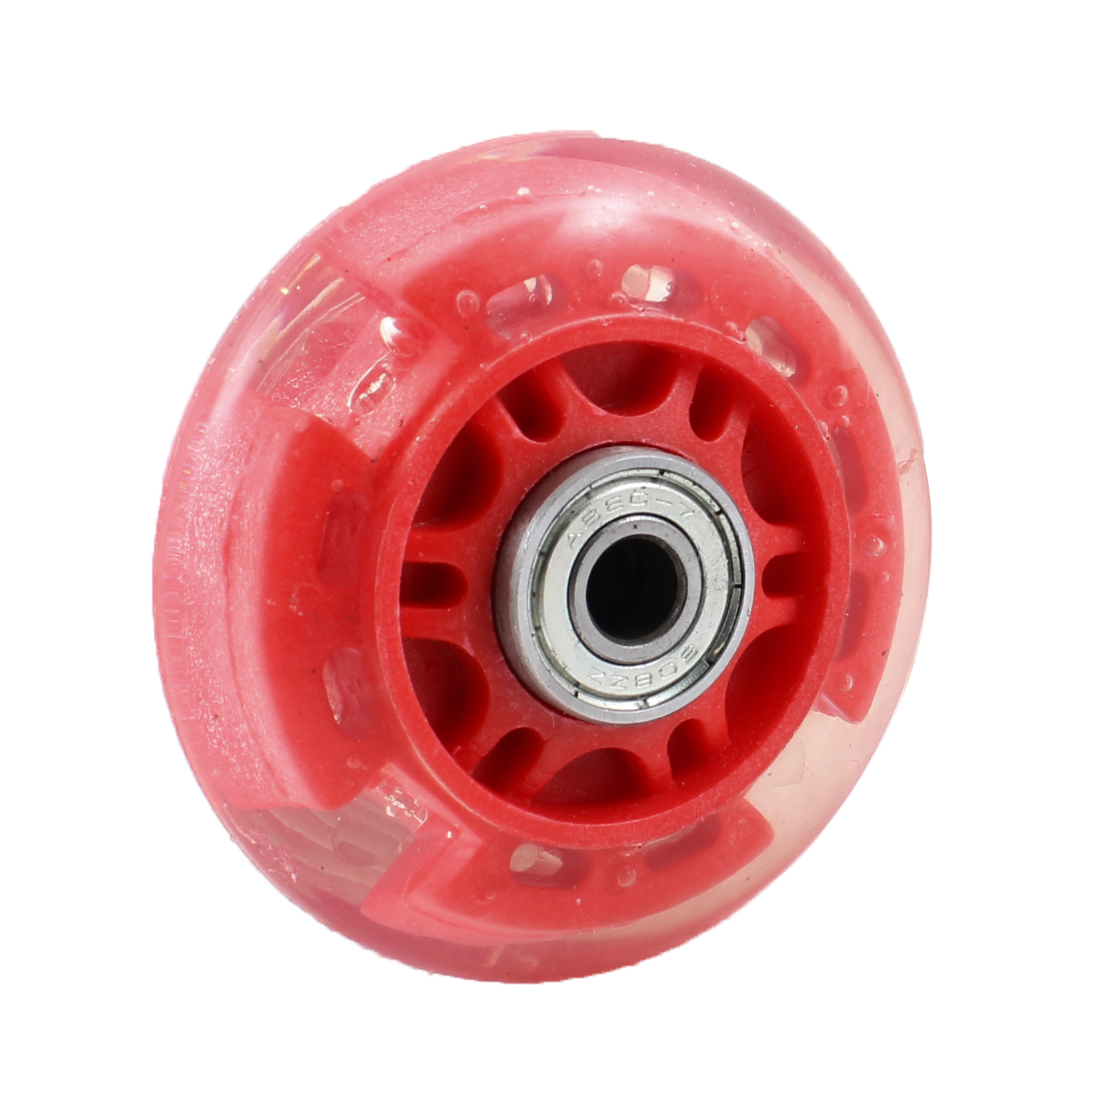 "Patinage chaussures 2.76"" dia 608ZZ support clair rouge plastique patin roue"